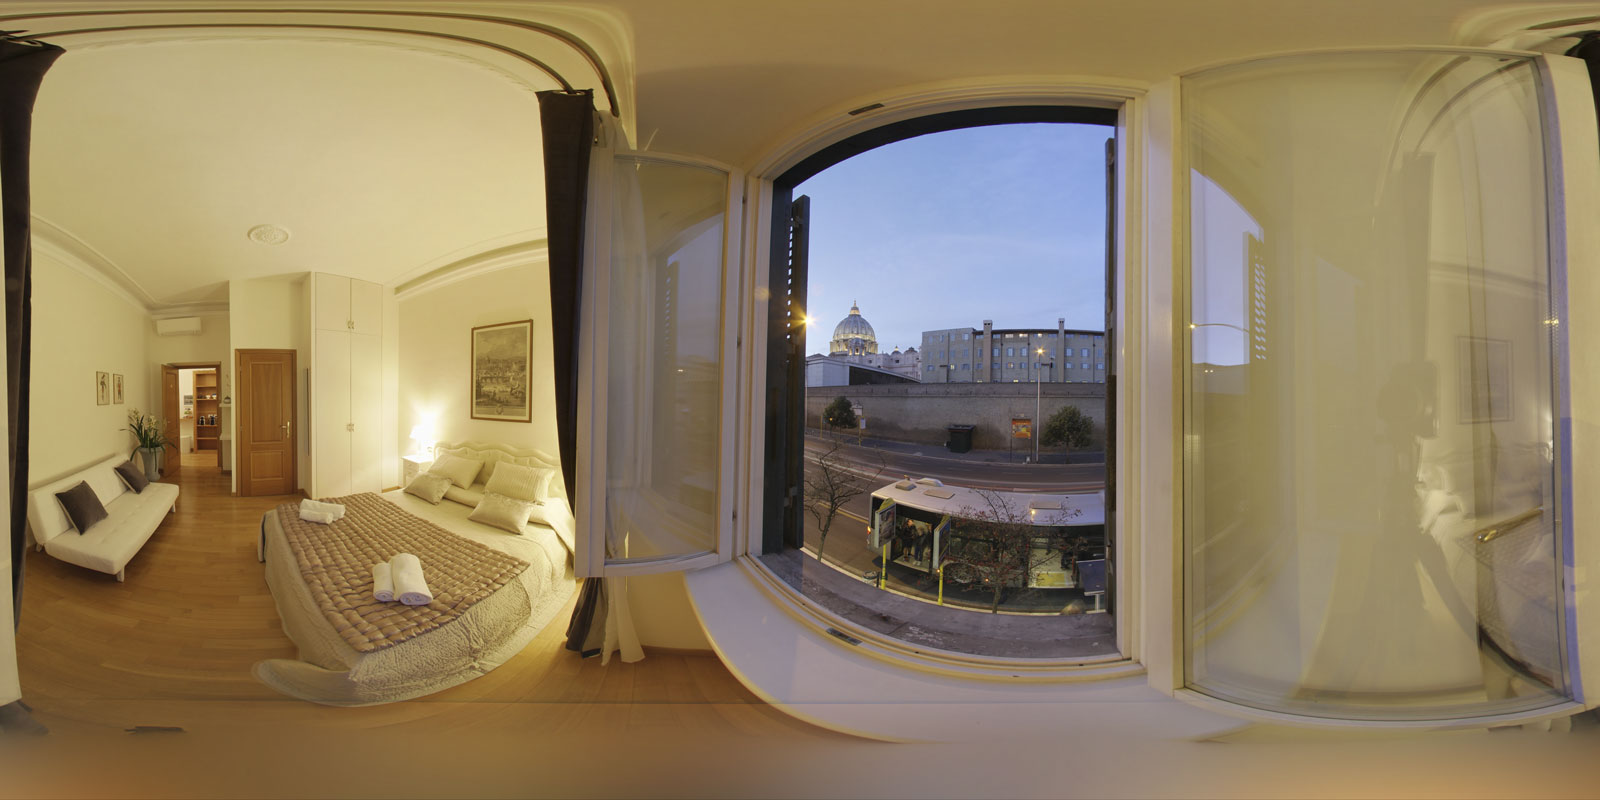 Interiors, Bed & Breakfast, Hotels, spherical photography